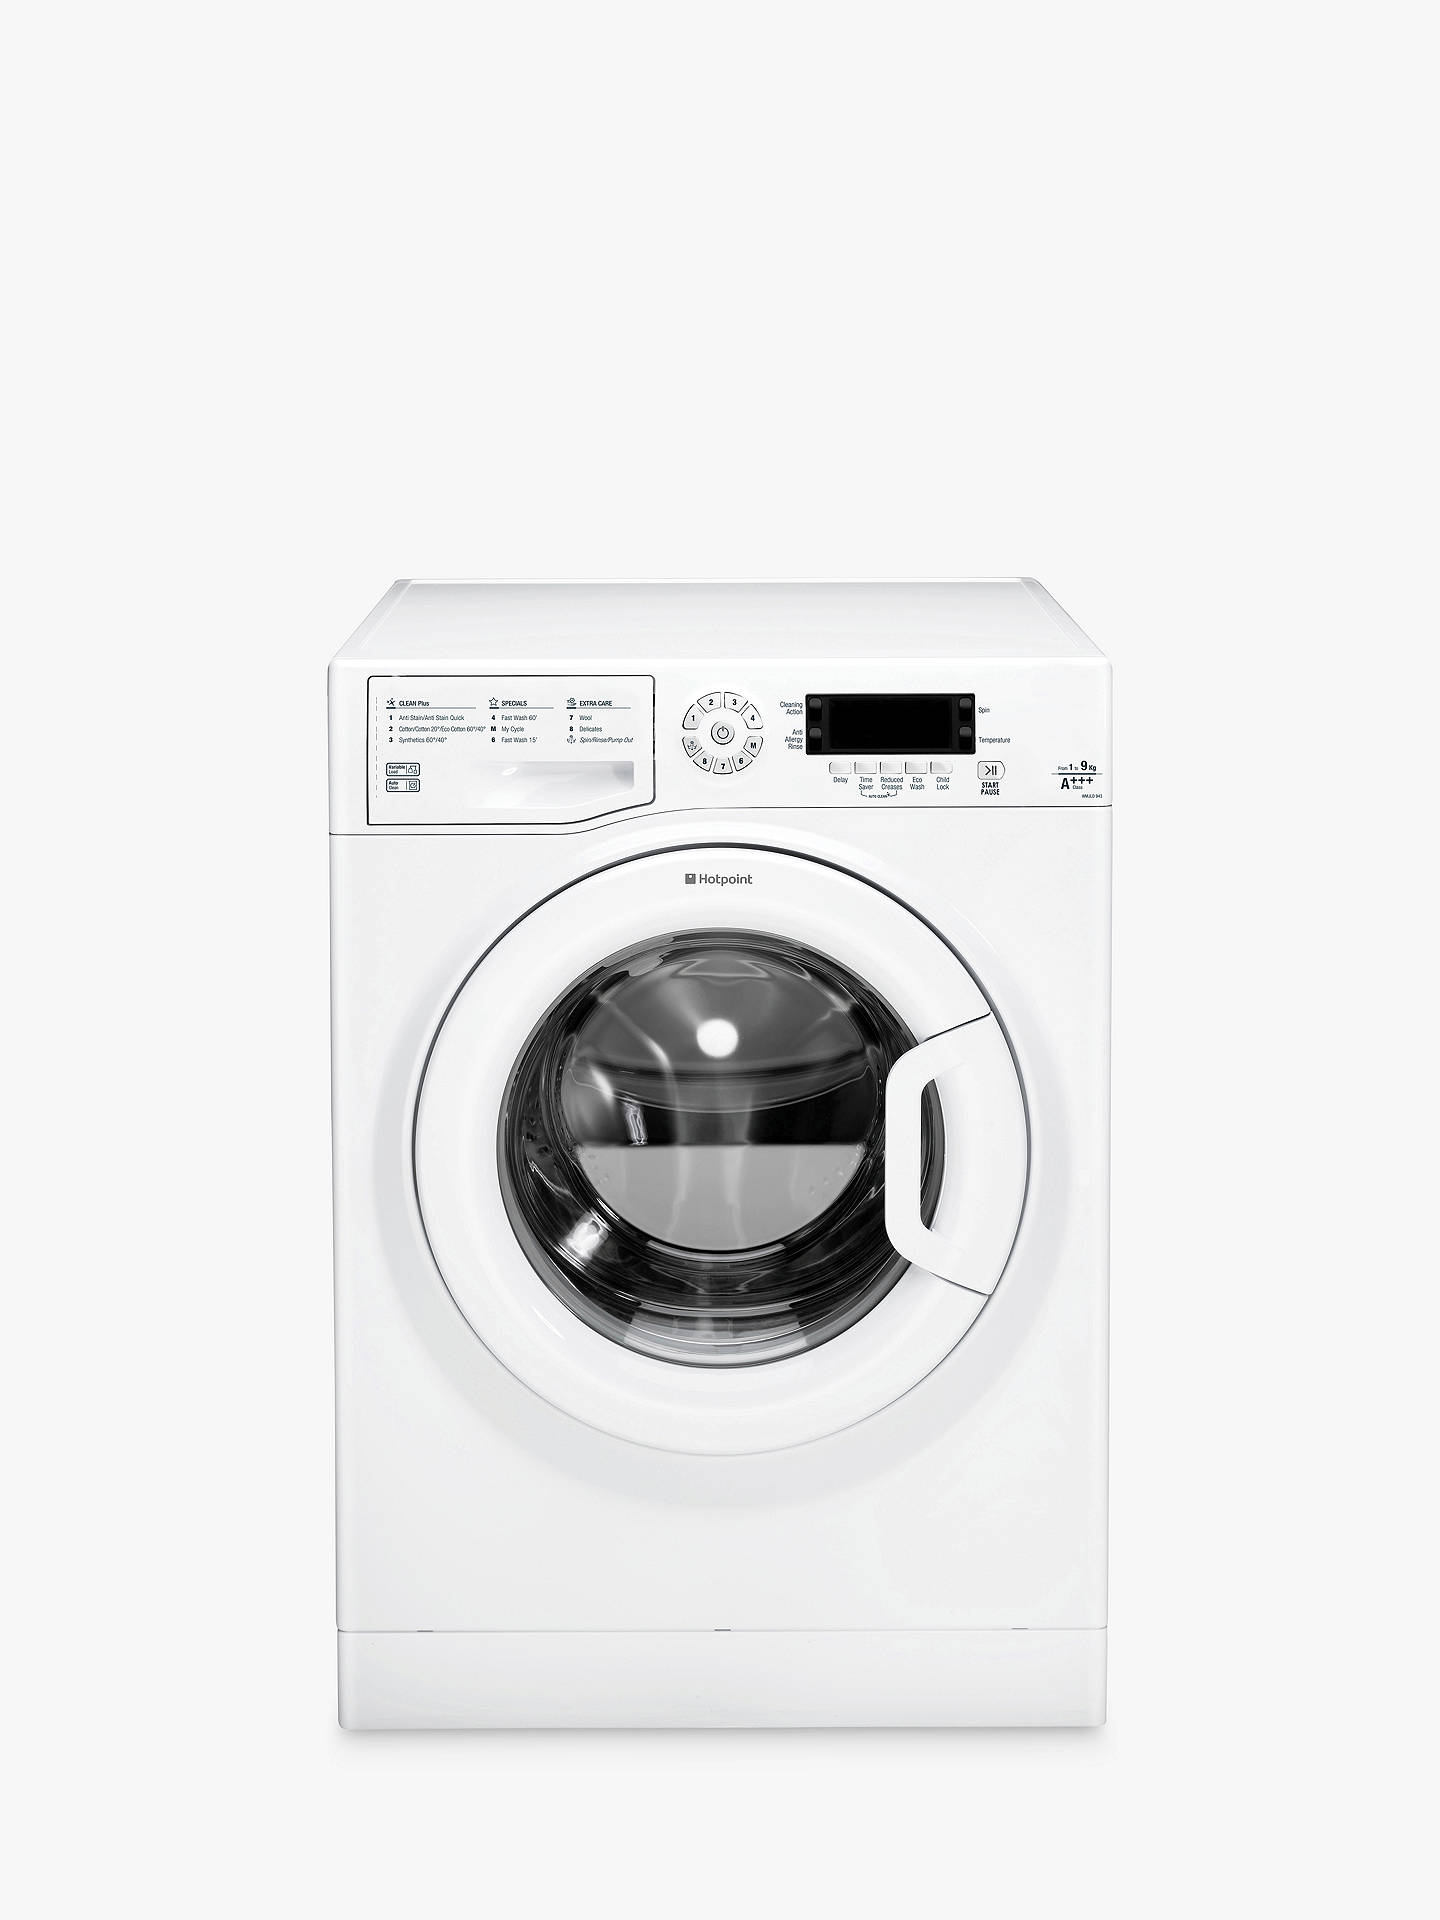 Buy Hotpoint WMJLD943P Freestanding Washing Machine, 9kg Load, A+++ Energy Rating, 1400rpm Spin, White Online at johnlewis.com